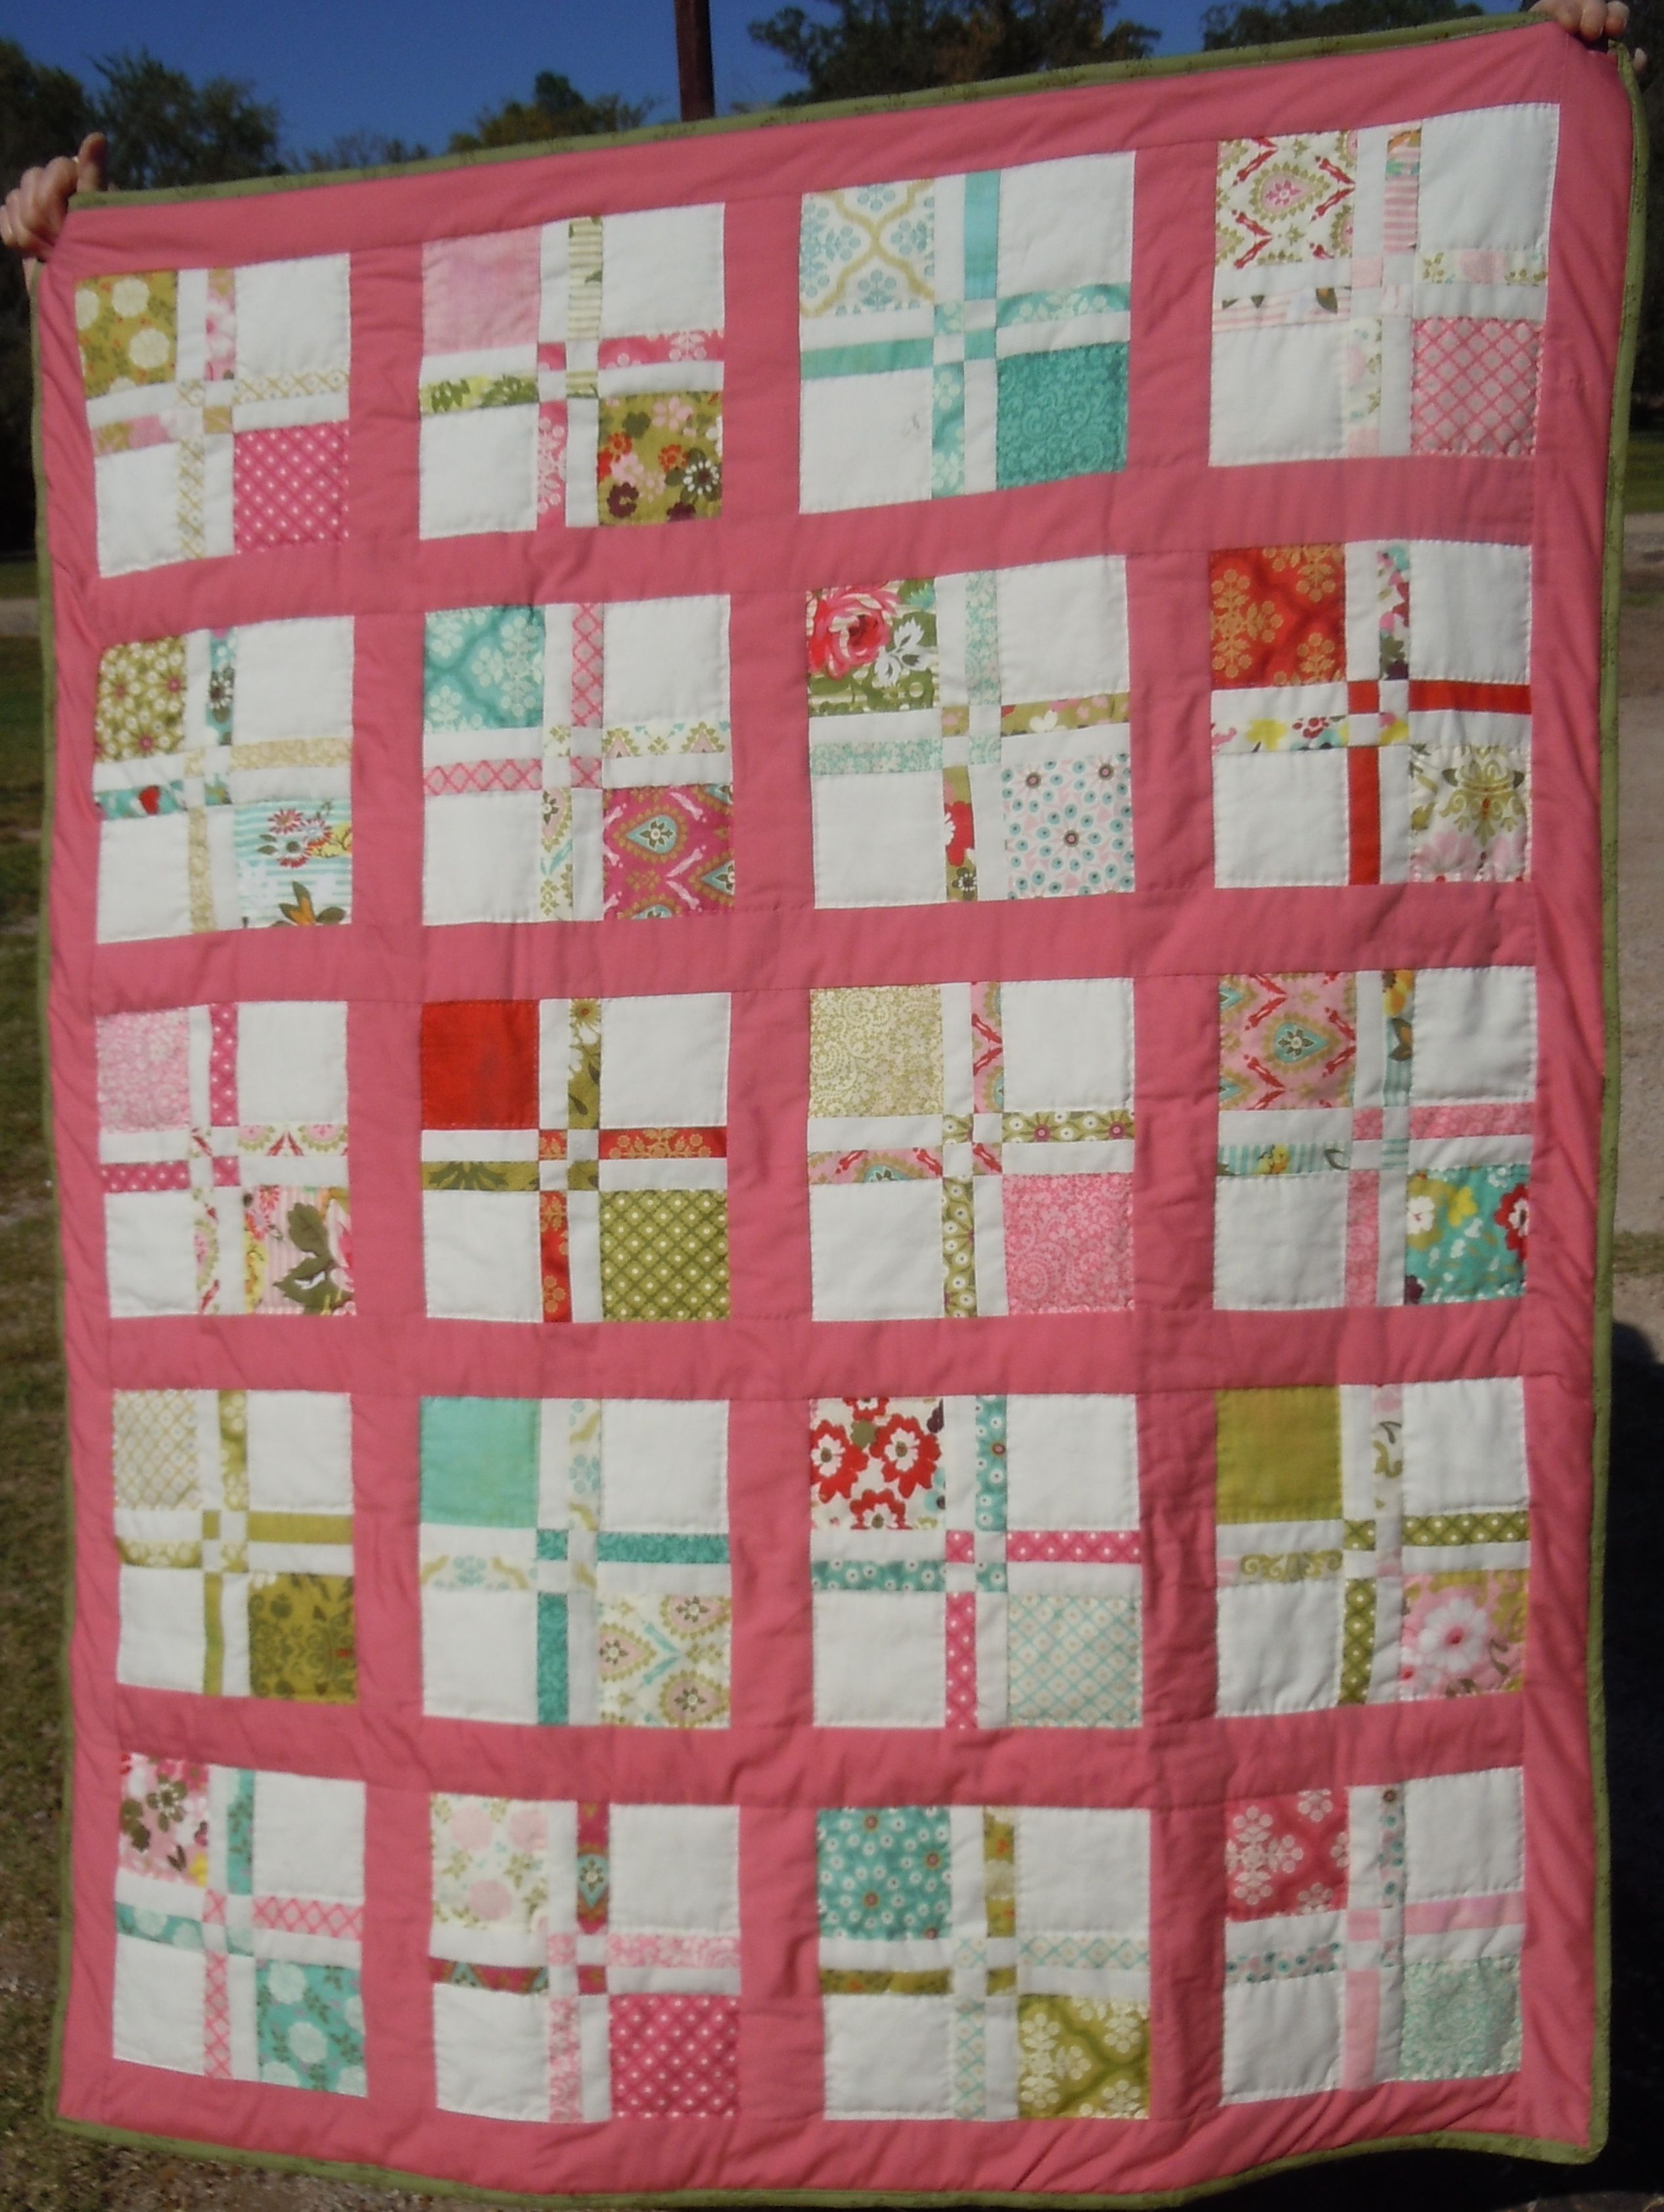 Lap Quilt I made for the Family Reunion | quilts completed ... : family quilts - Adamdwight.com